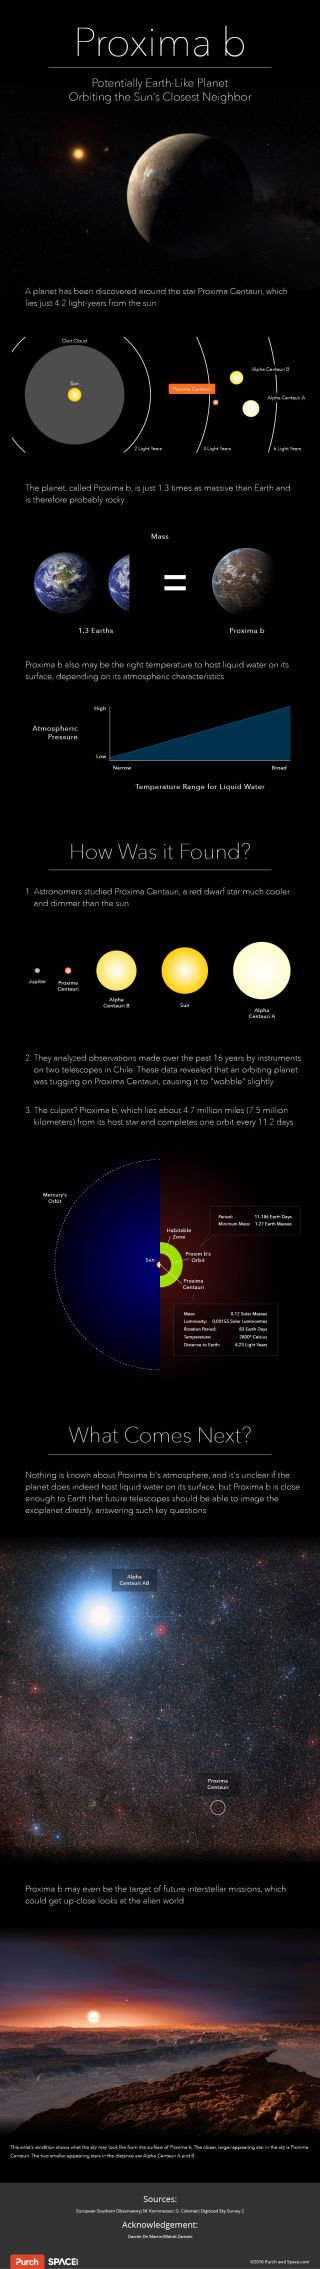 Proxima Centauri, the sun's nearest neighbor, may host a 2nd alien planet. Meet Proxima c.